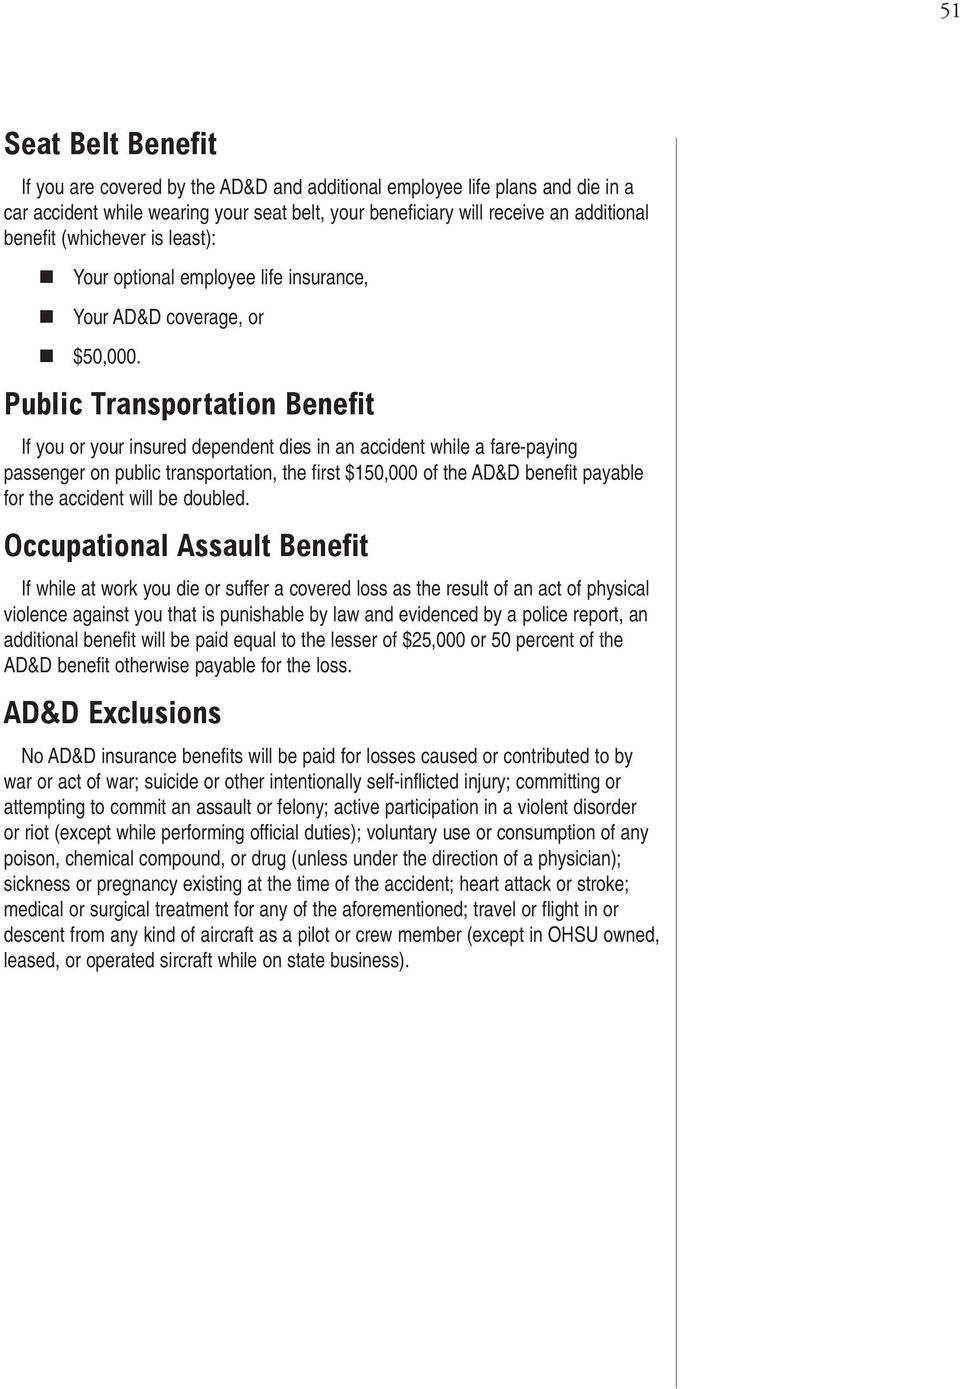 Public Transportation Benefit If you or your insured dependent dies in an accident while a fare-paying passenger on public transportation, the first $150,000 of the AD&D benefit payable for the